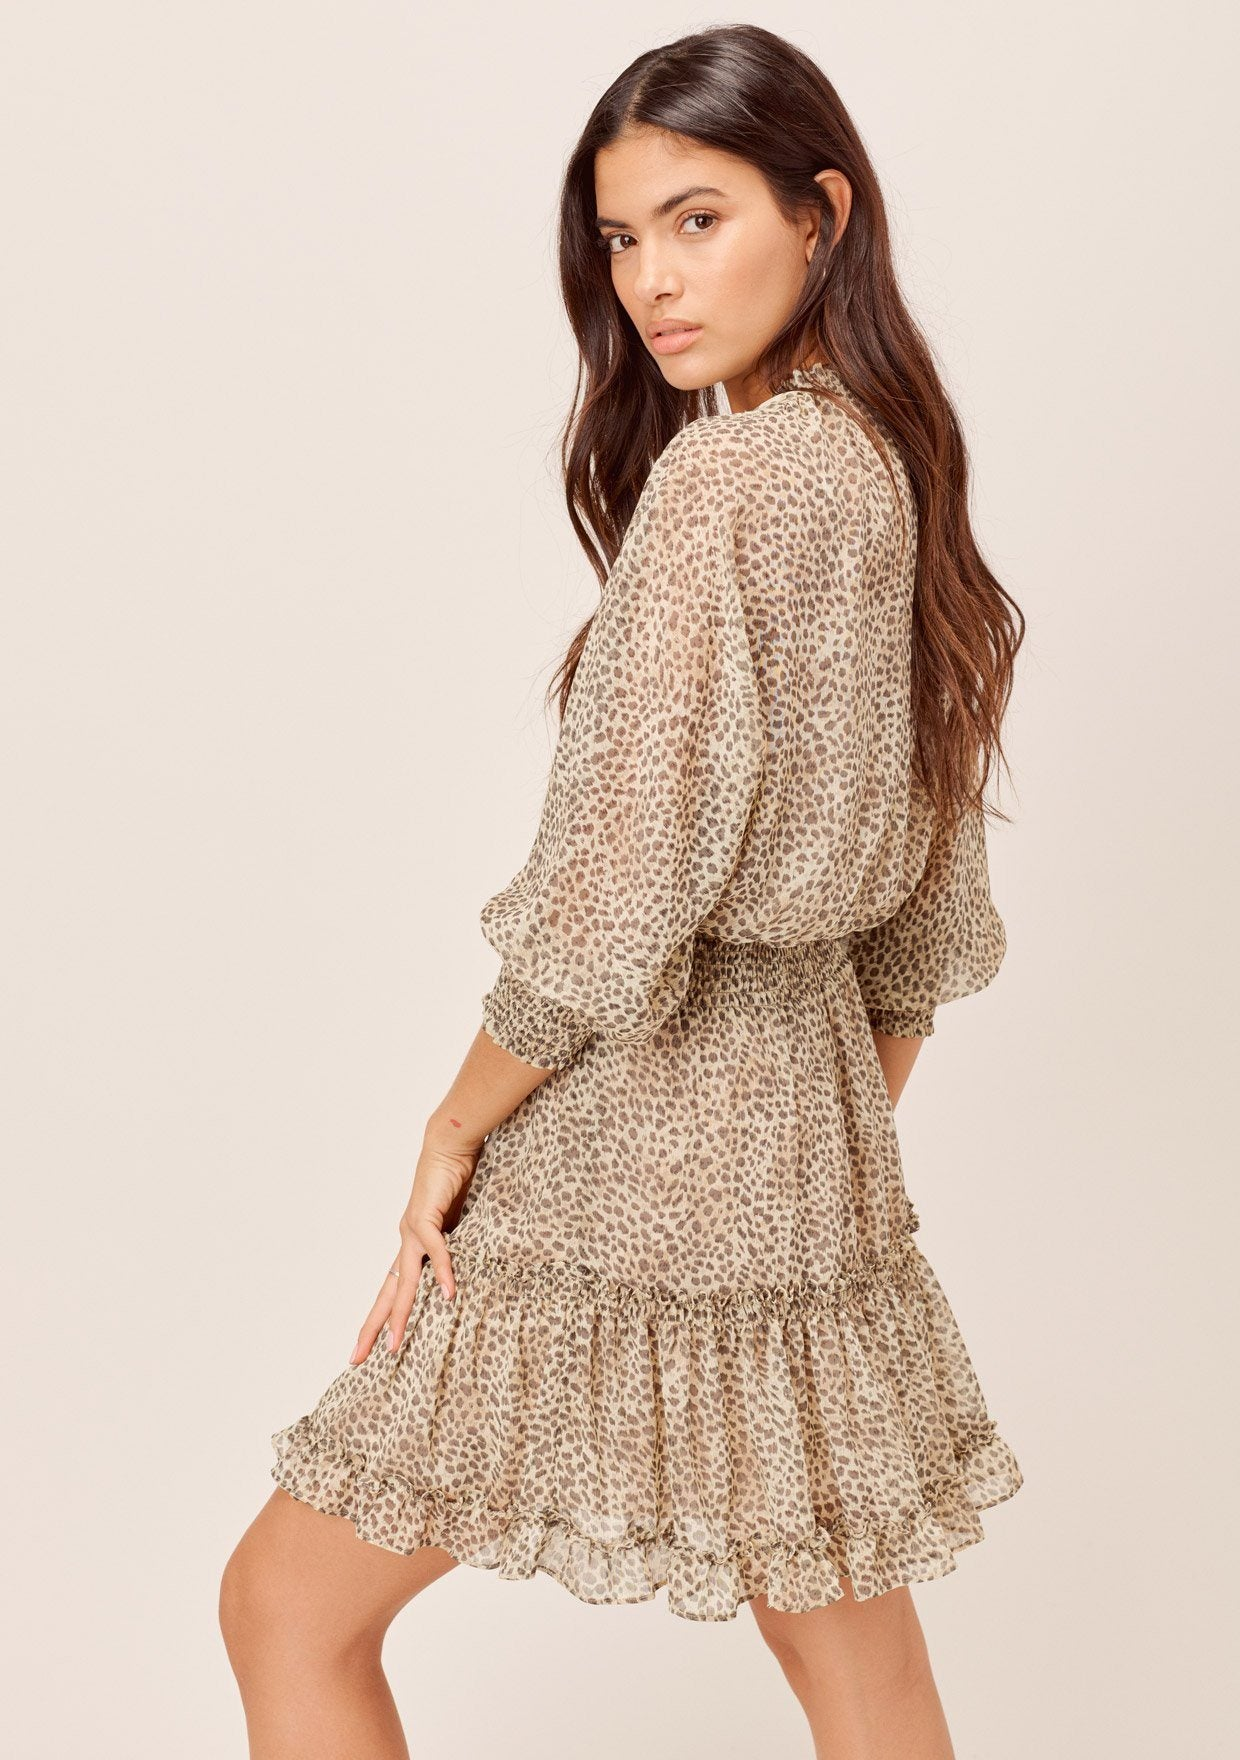 [Color: Natural] Lovestitch natural Animal printed, dolman sleeve, chiffon mini dress with smocked waist, 3/4 length smocked sleeves and tie neck detail.